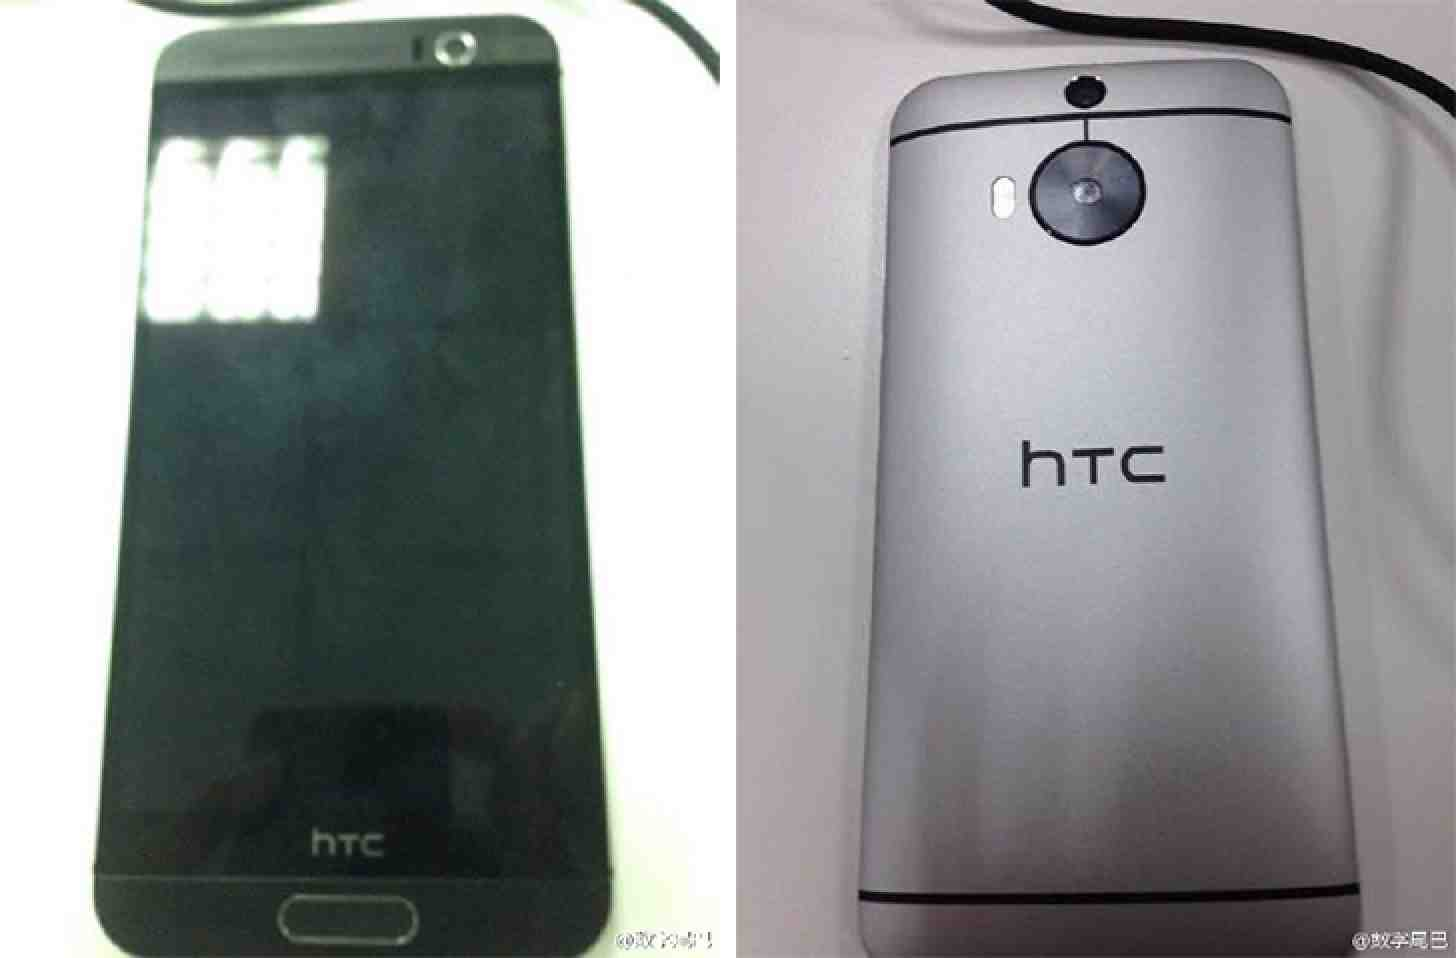 HTC-One-M9-Plus--HTC-Desire-A55-leaked-images